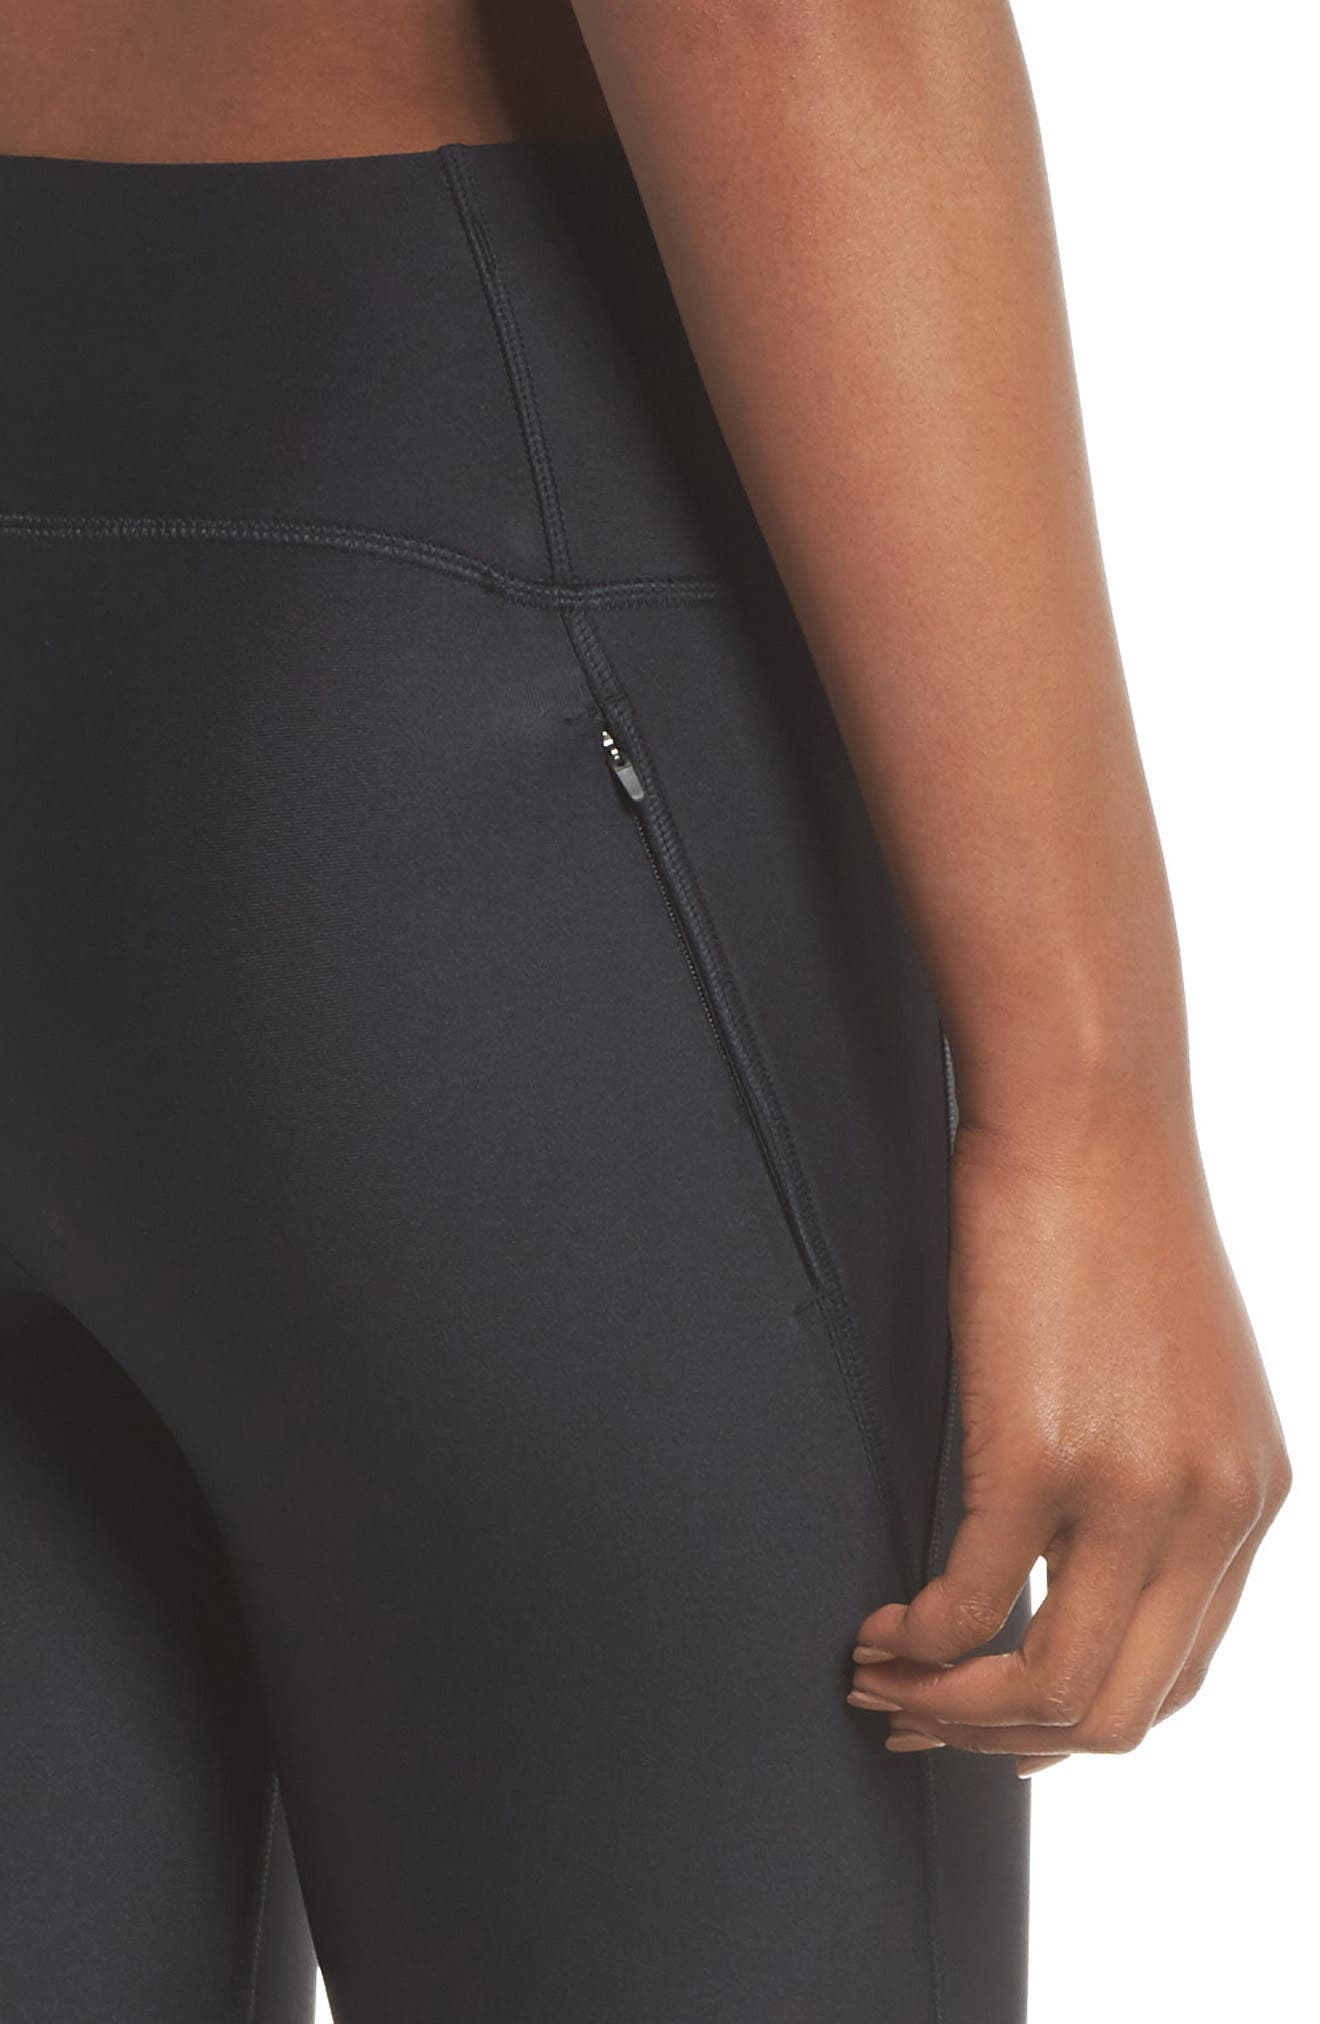 Fly Fast Tights,                             Alternate thumbnail 4, color,